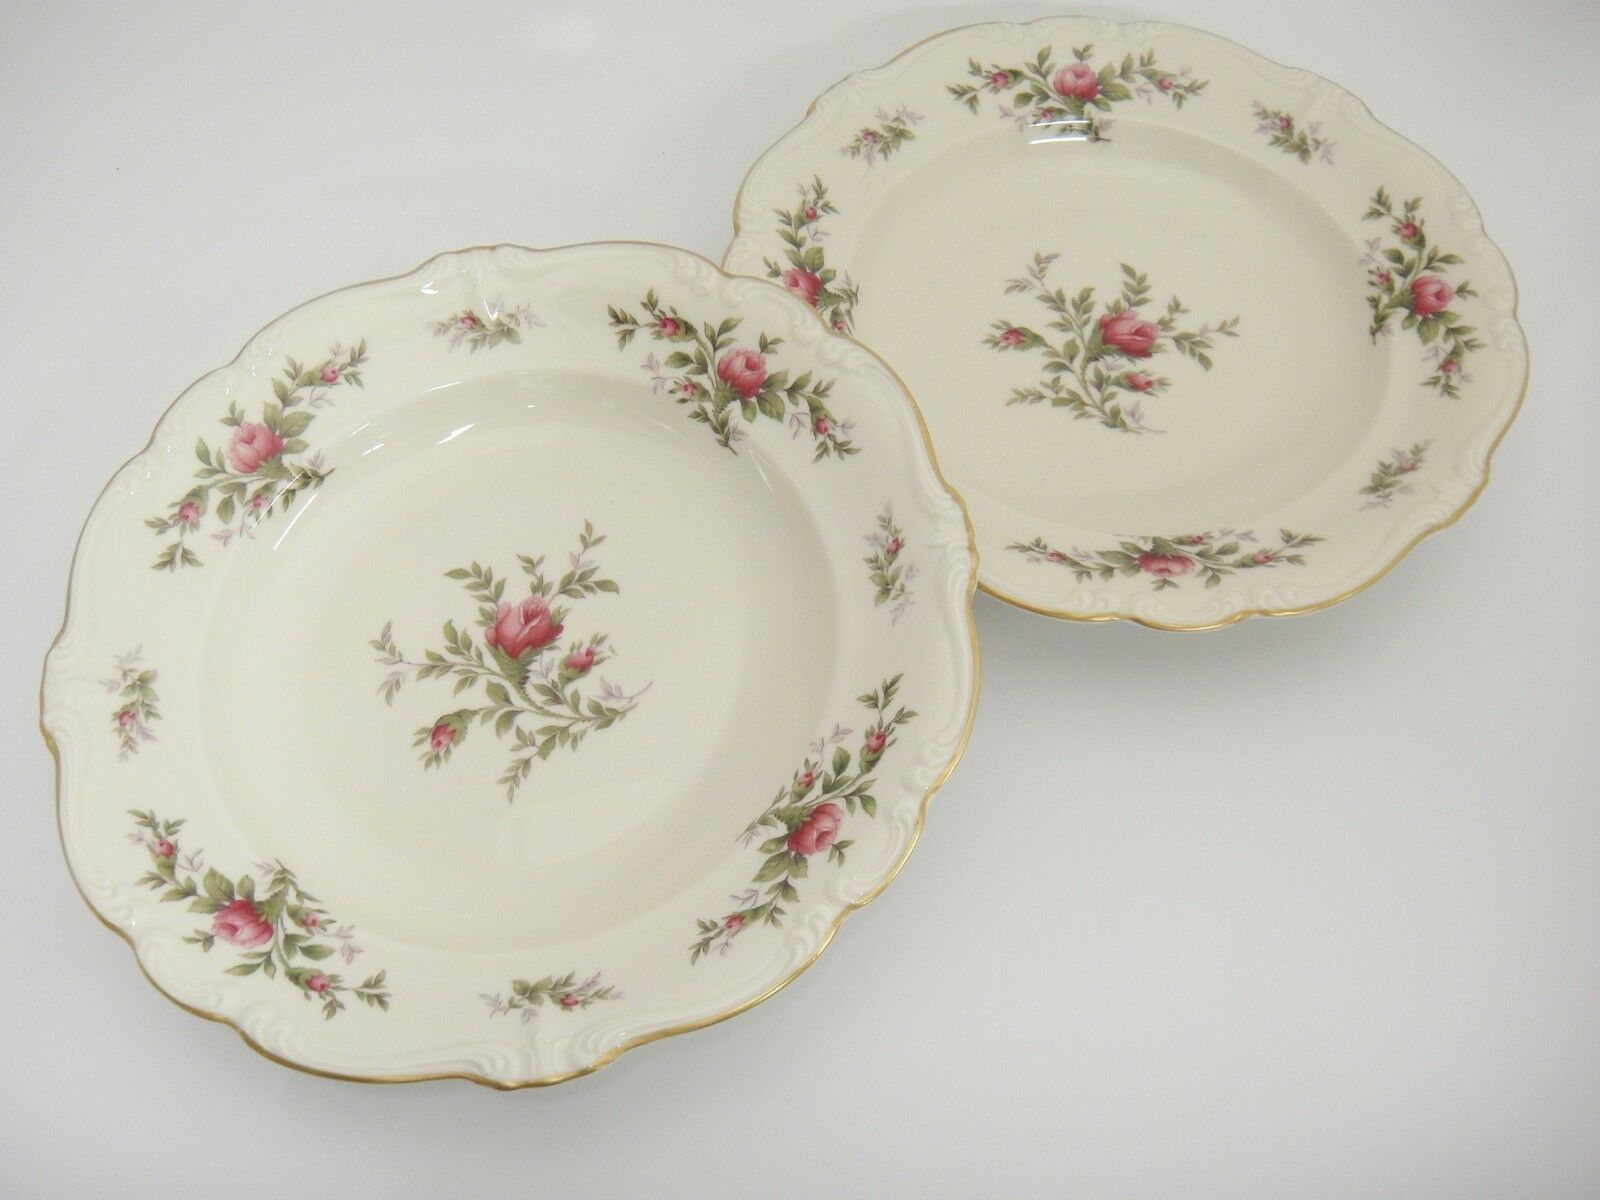 Primary image for Rosenthal Antoinette Moss Rose Rimmed Soup Bowls Lot of 2 Pompadour Mint